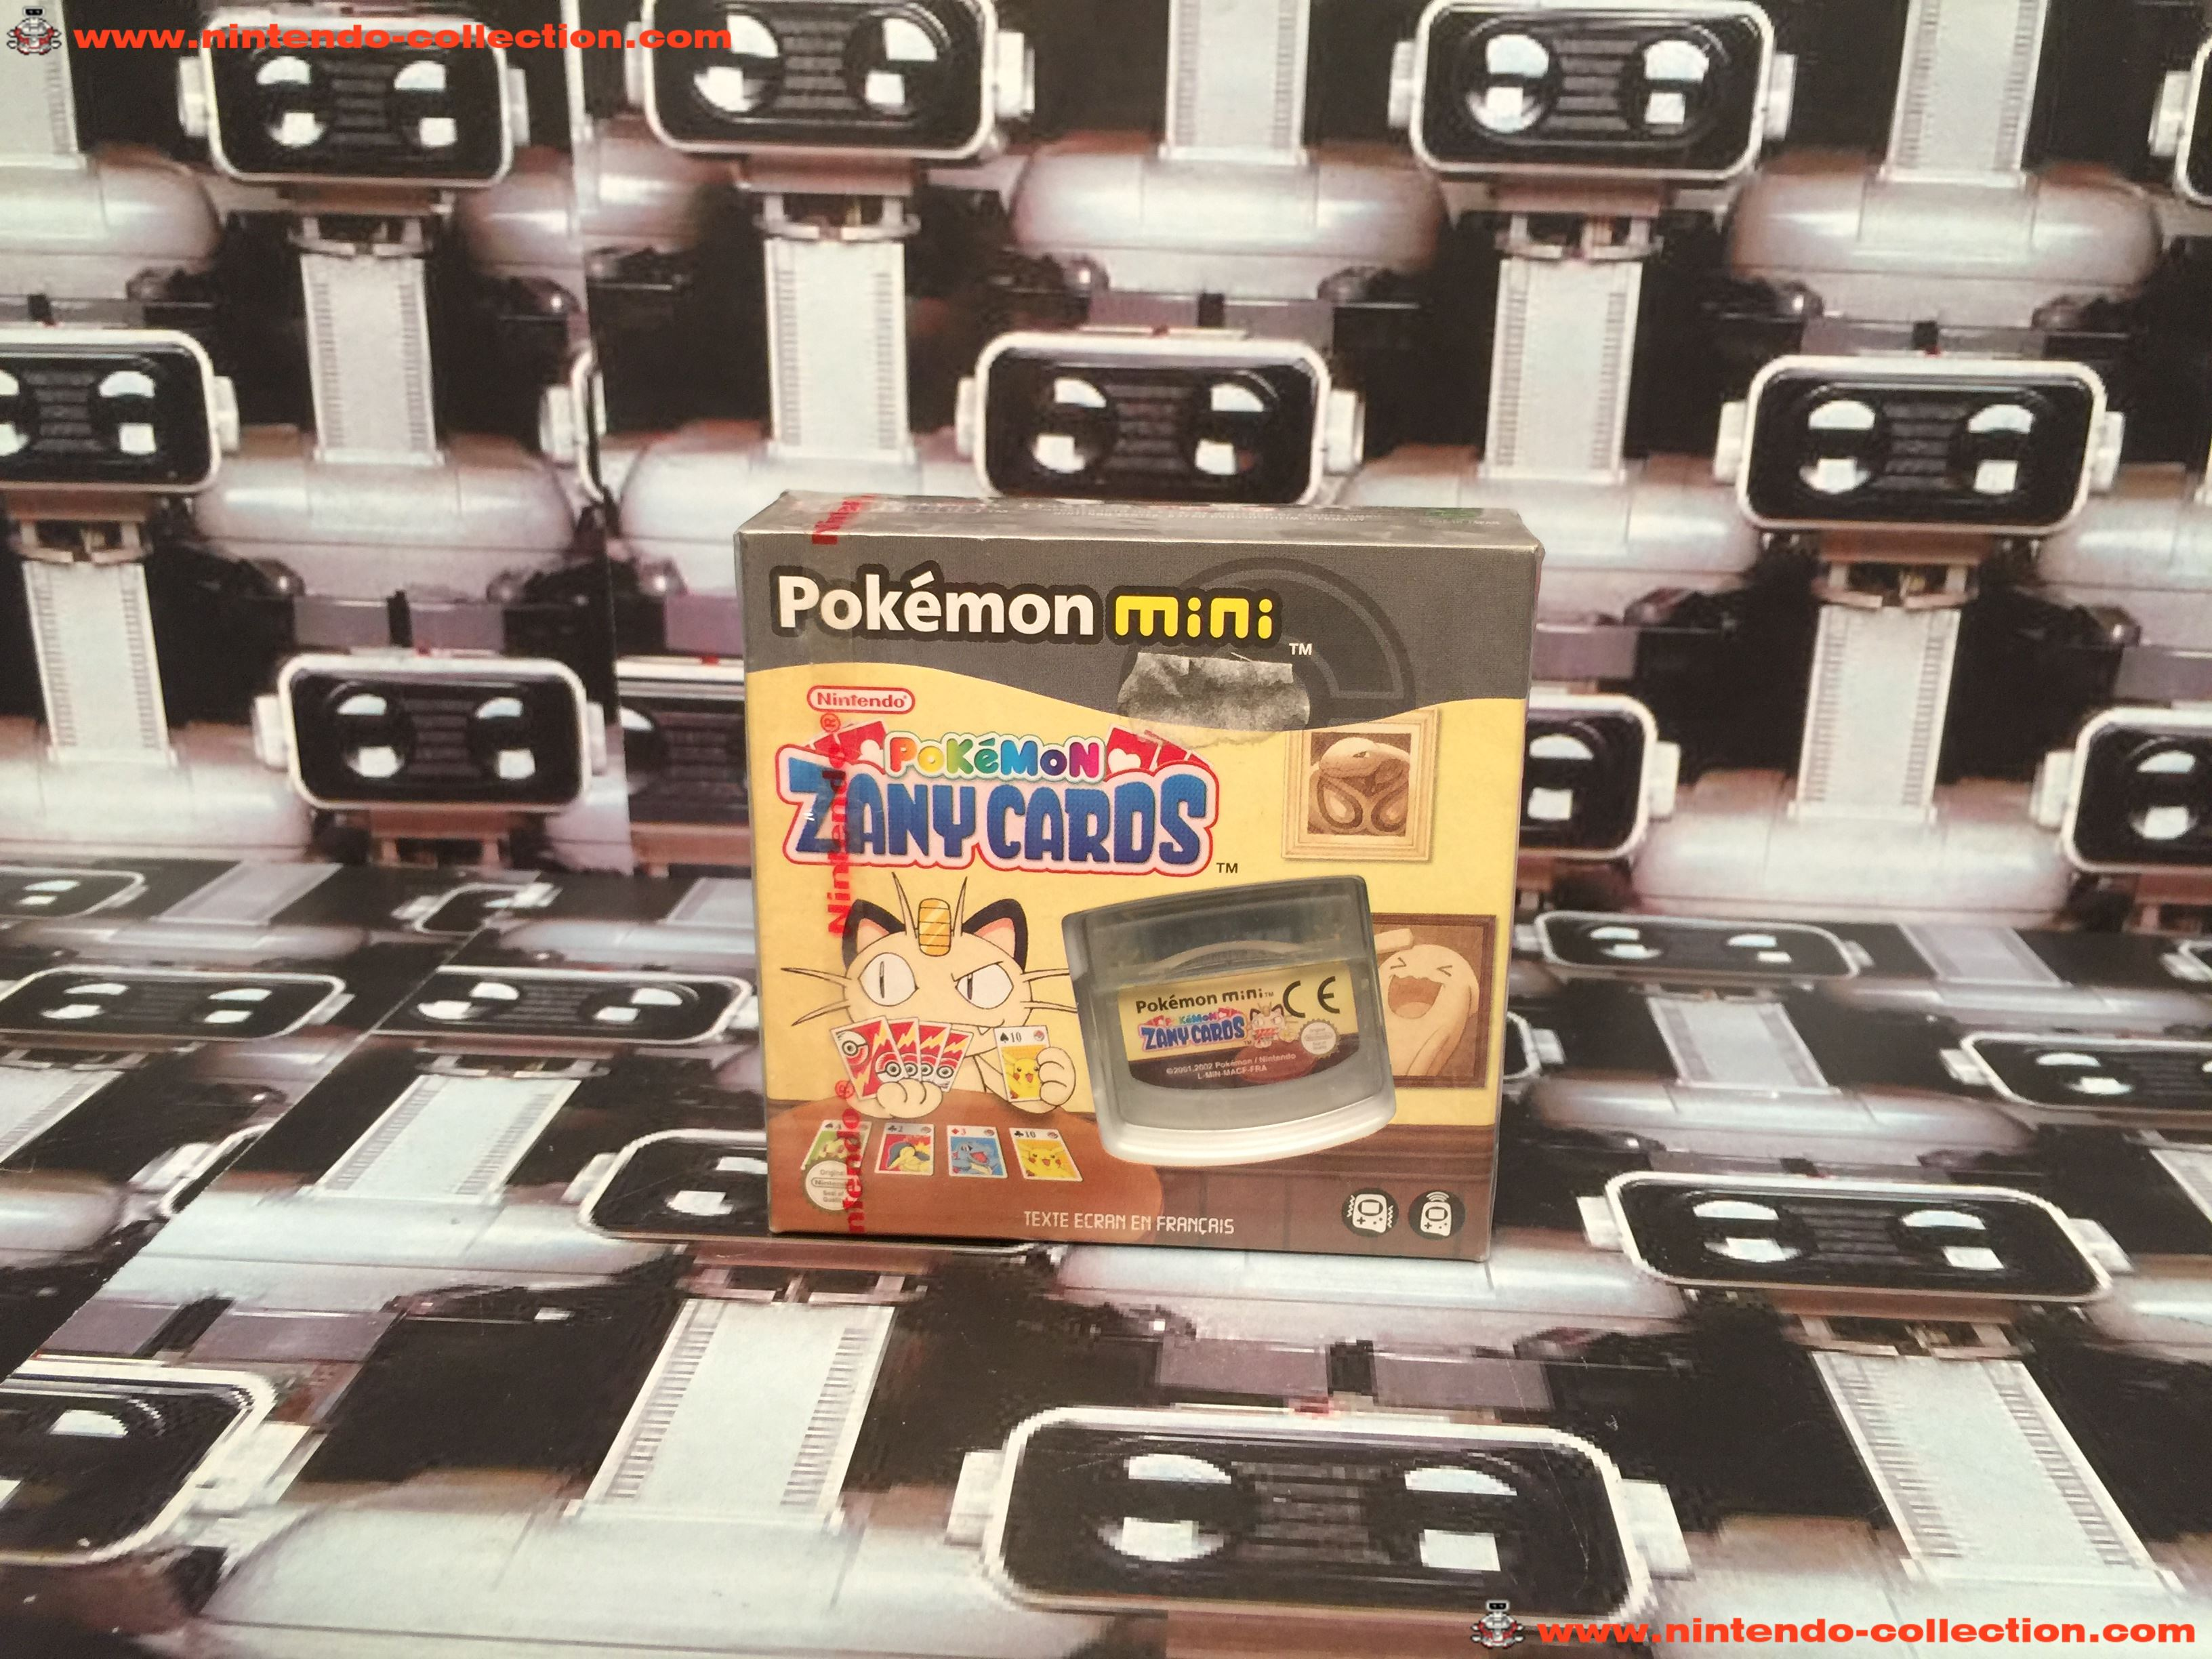 www.nintendo-collection.com - Mini Nintendo Pokemon Mini Pokemon Zany Cards